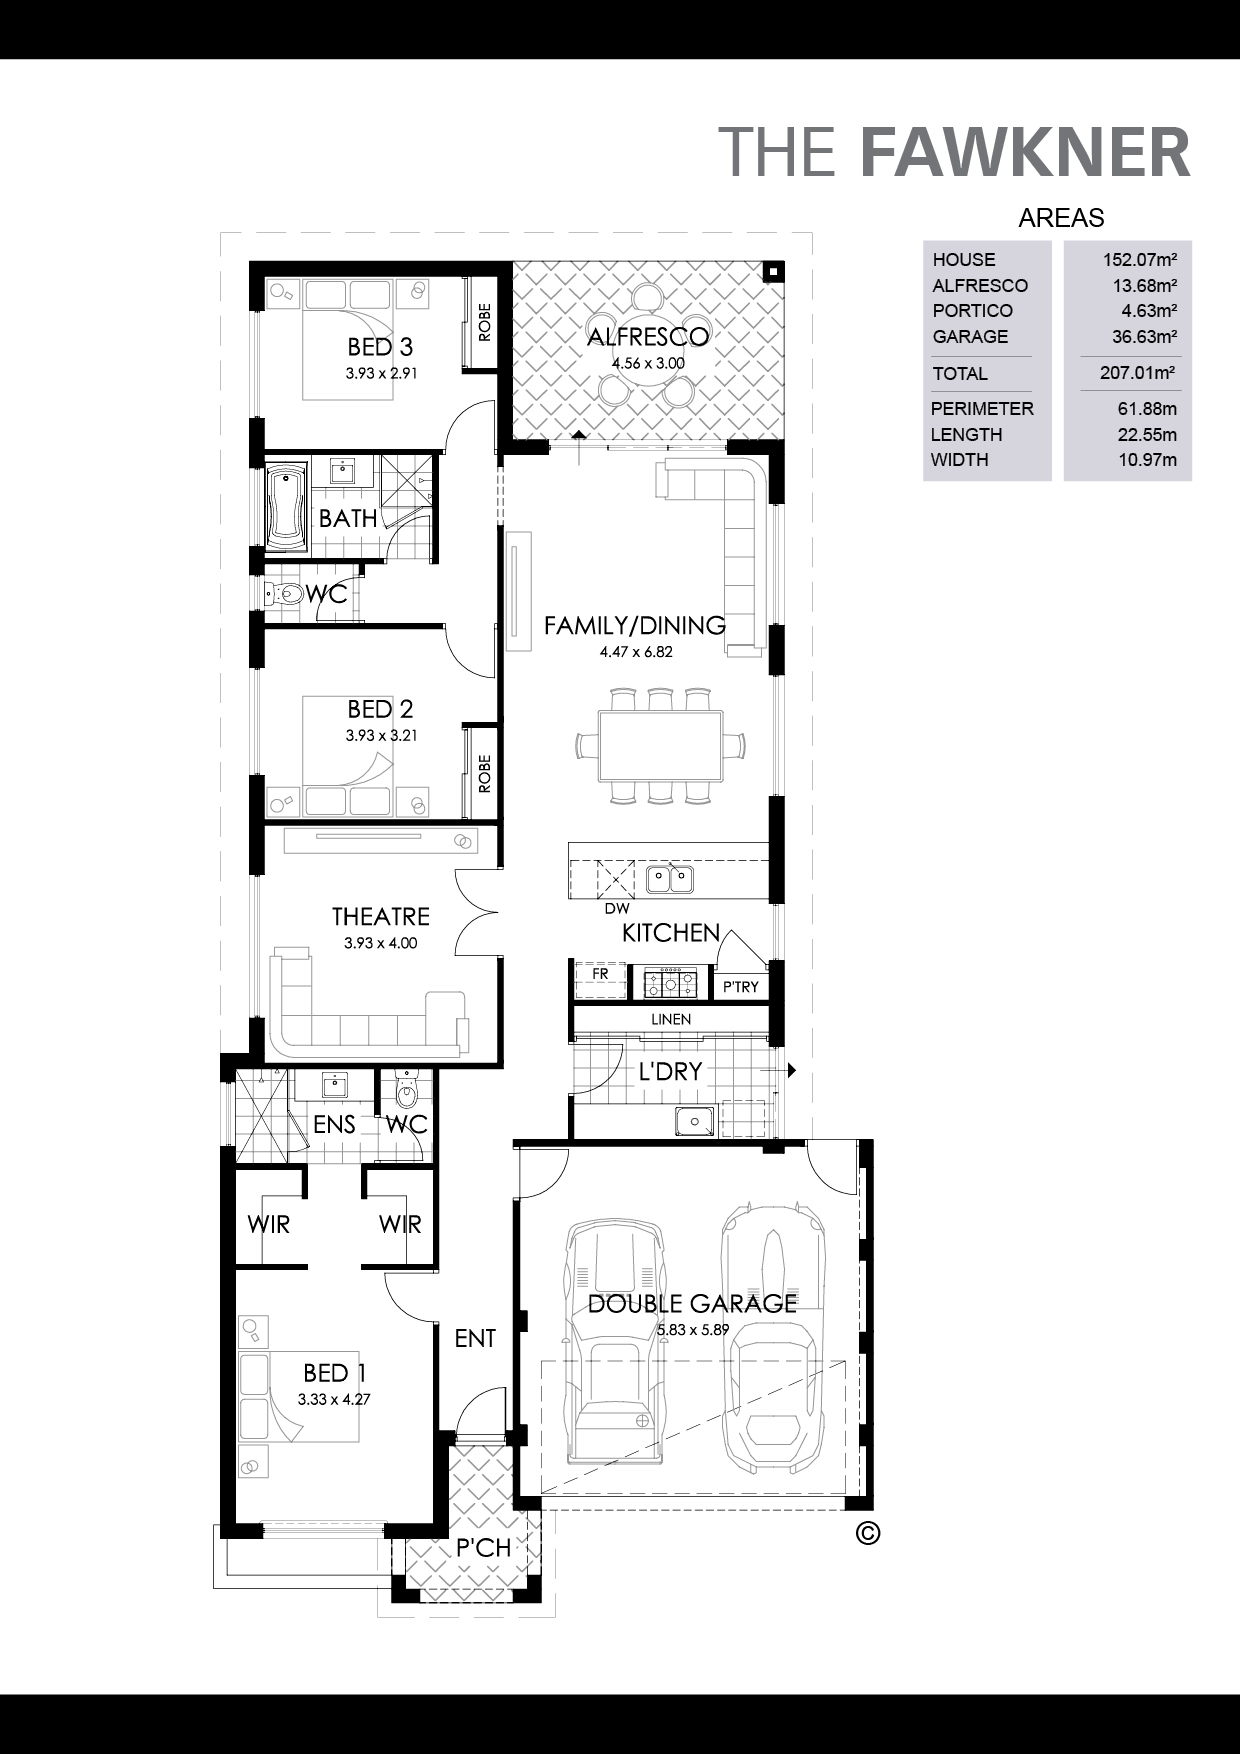 The Fawkner Floorplan